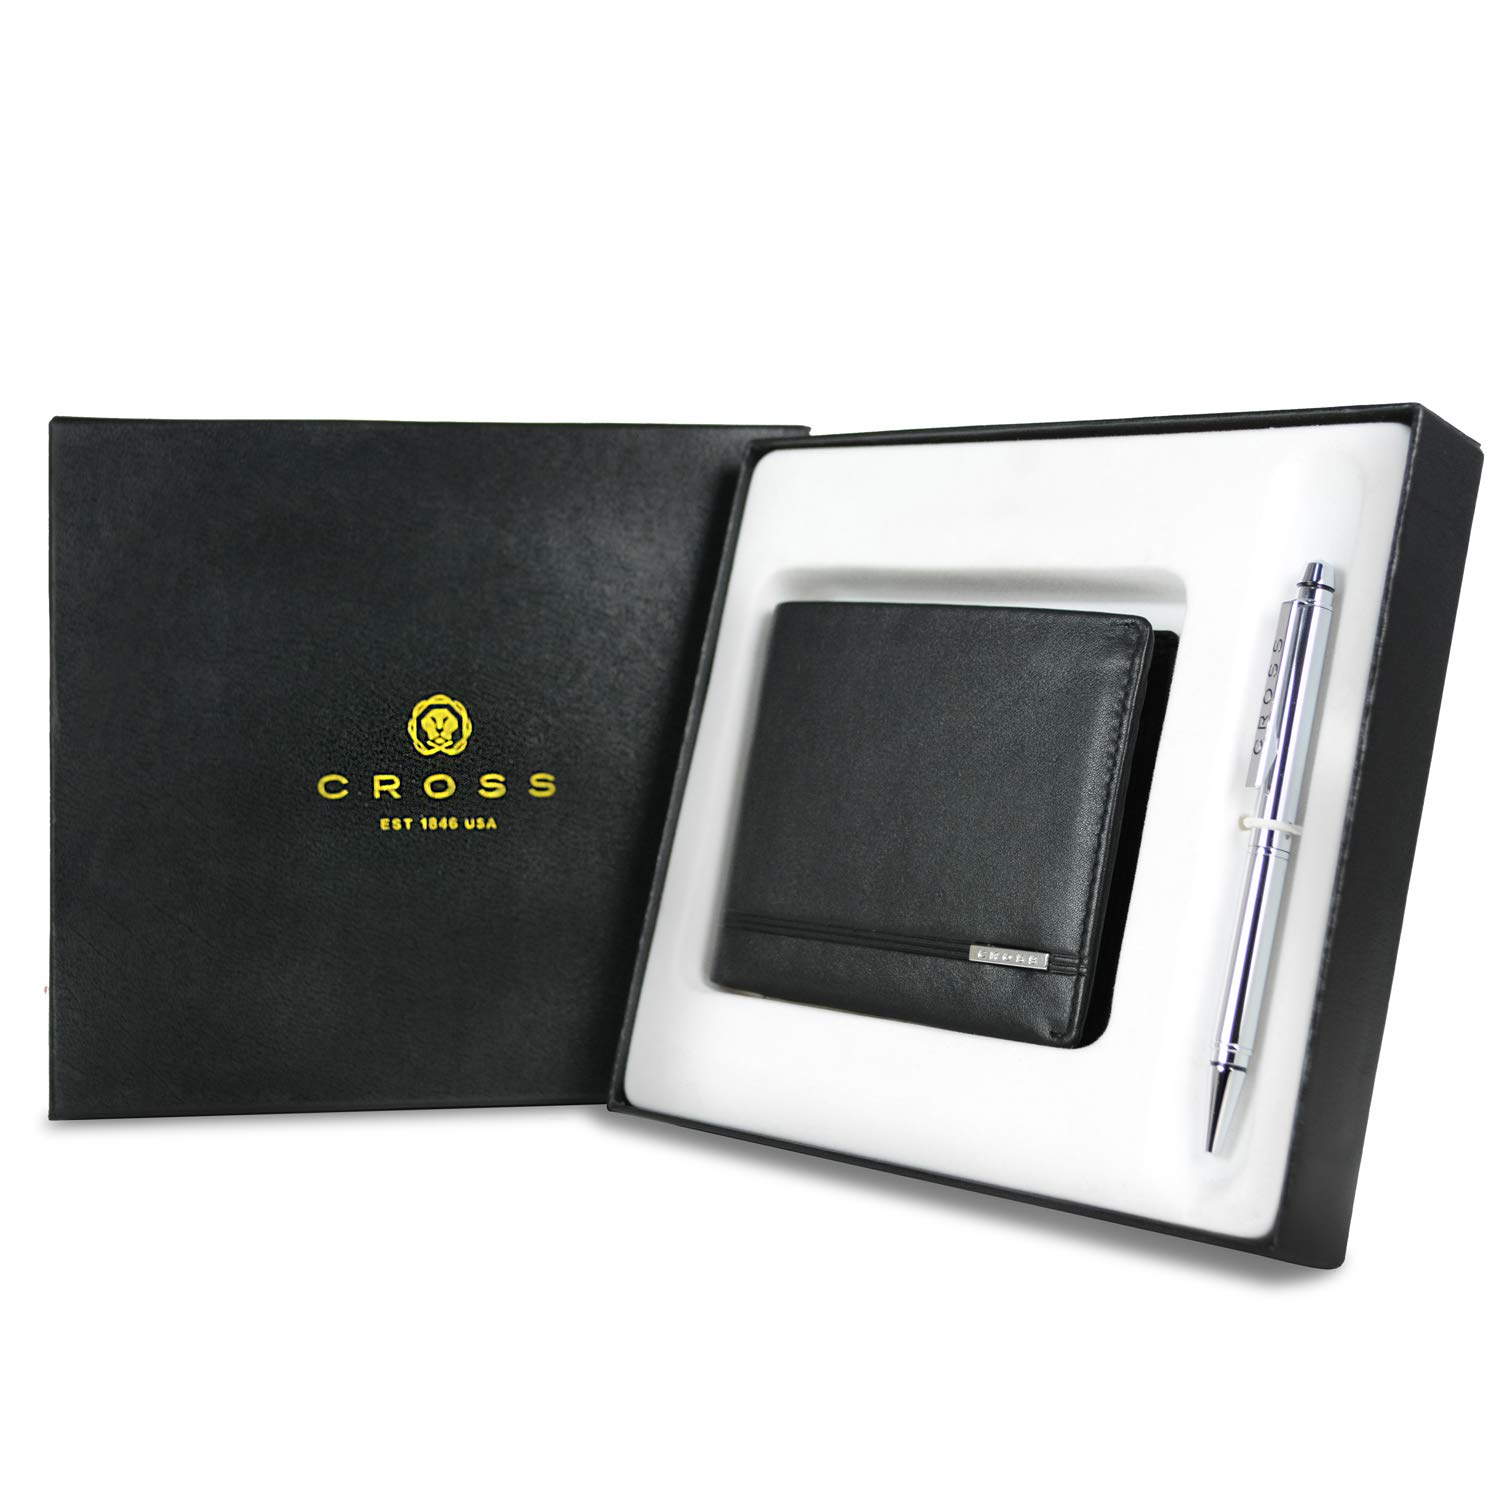 Cross Classic Century Bifold Coin Wallet And Luxury Agenda